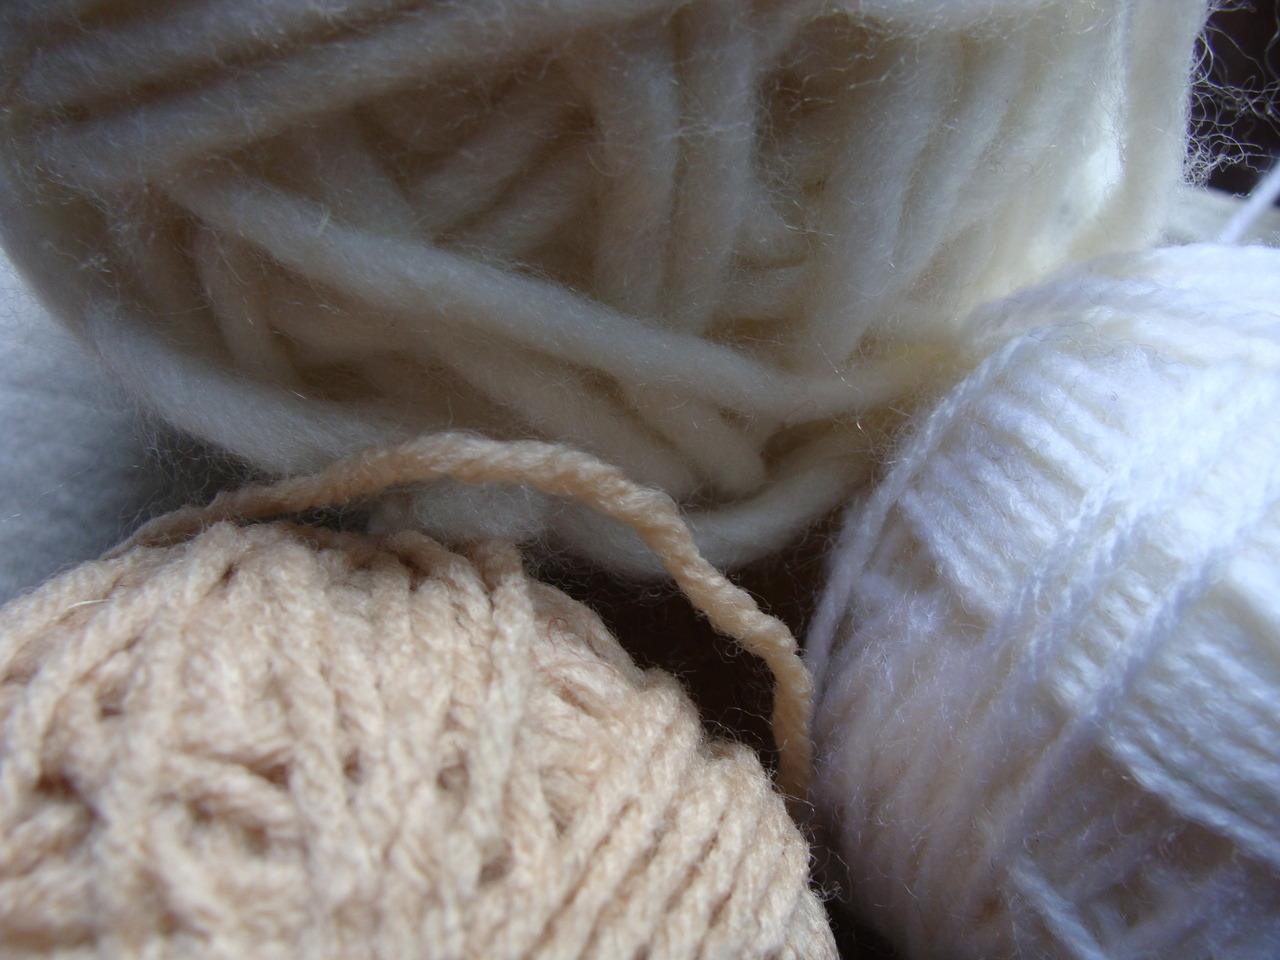 Skeins of wool textures.